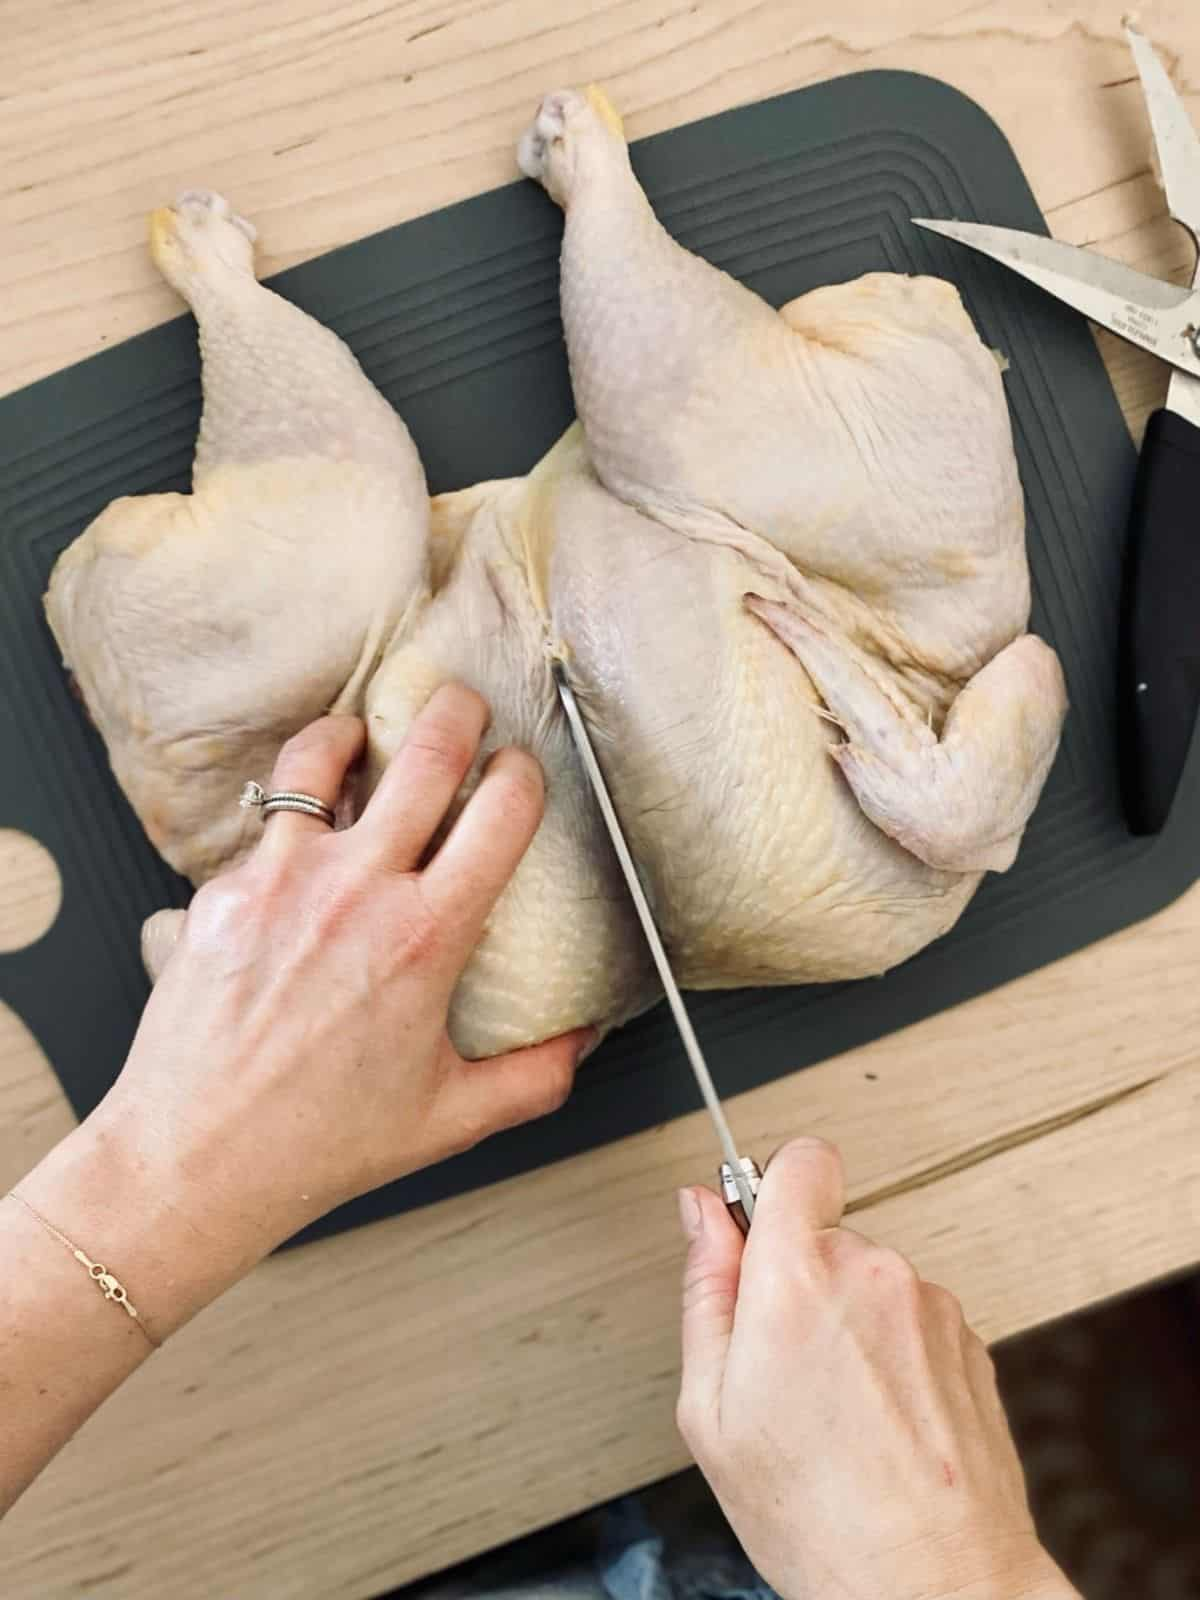 flattened chicken on cutting board with hands using cleaver to cut in half